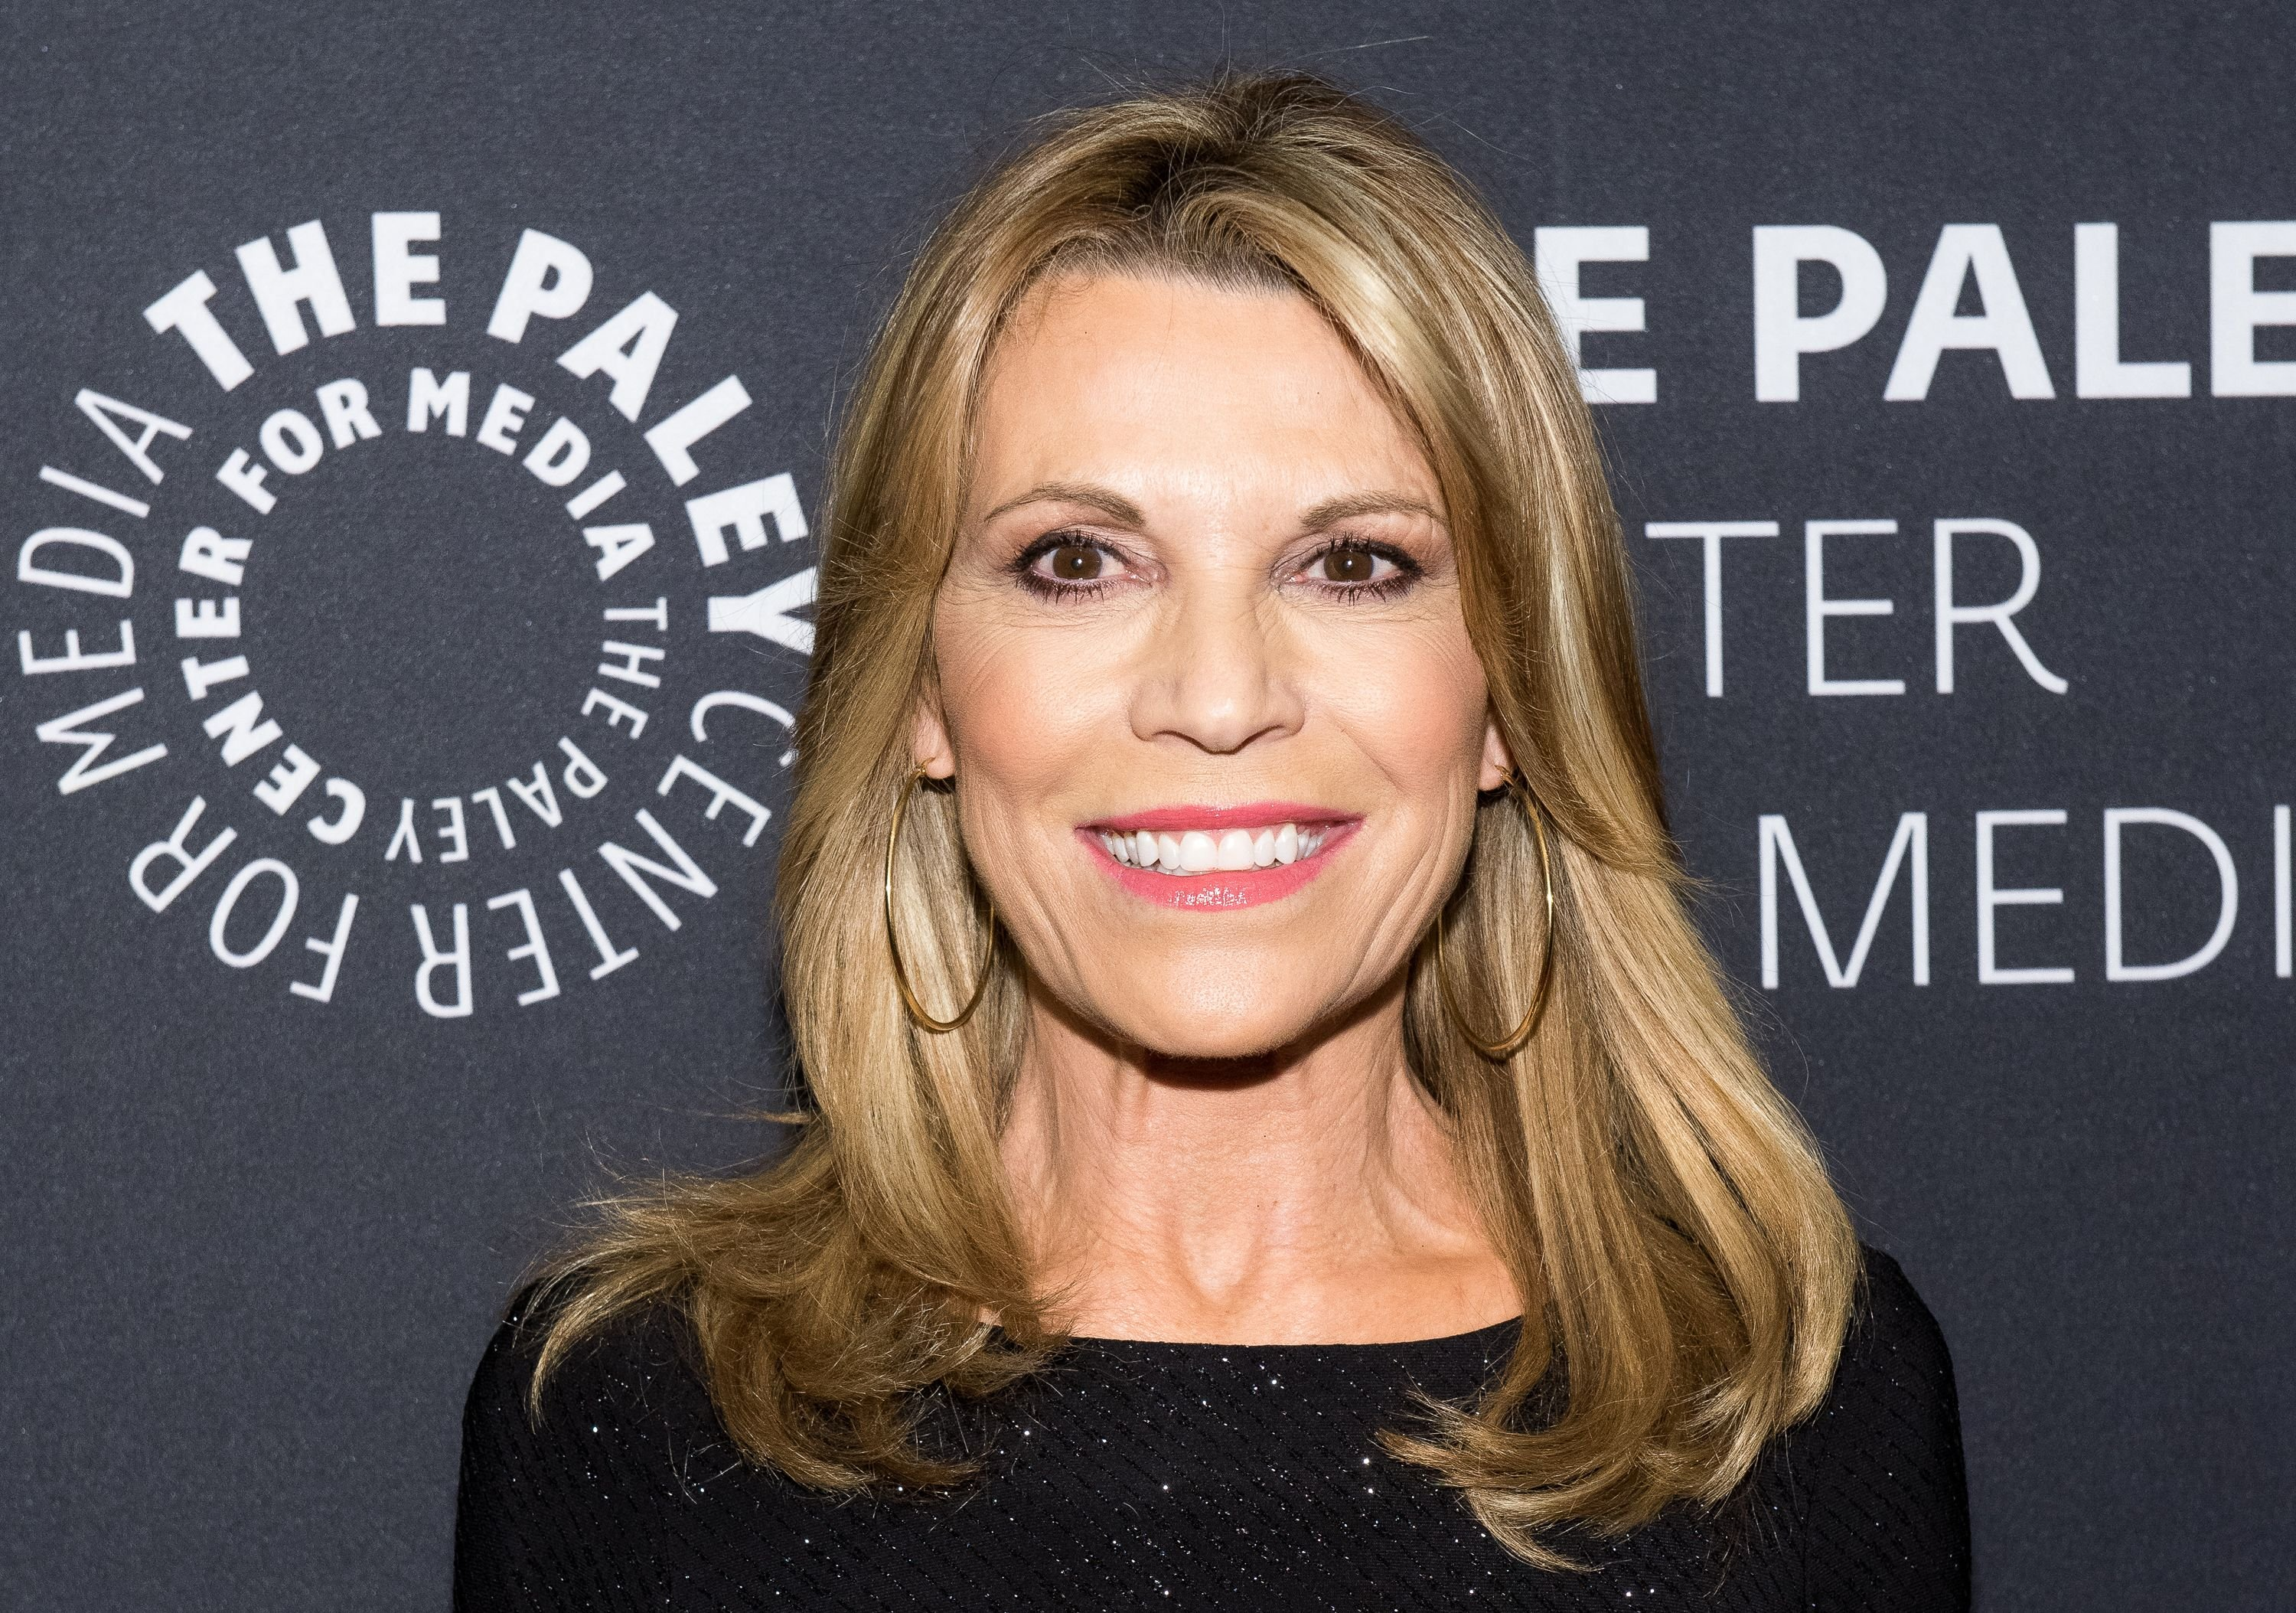 Vanna White at The Paley Center For Media Presents: Wheel Of Fortune: 35 Years As America's Game at The Paley Center for Media on November 15, 2017 | Photo: Getty Images